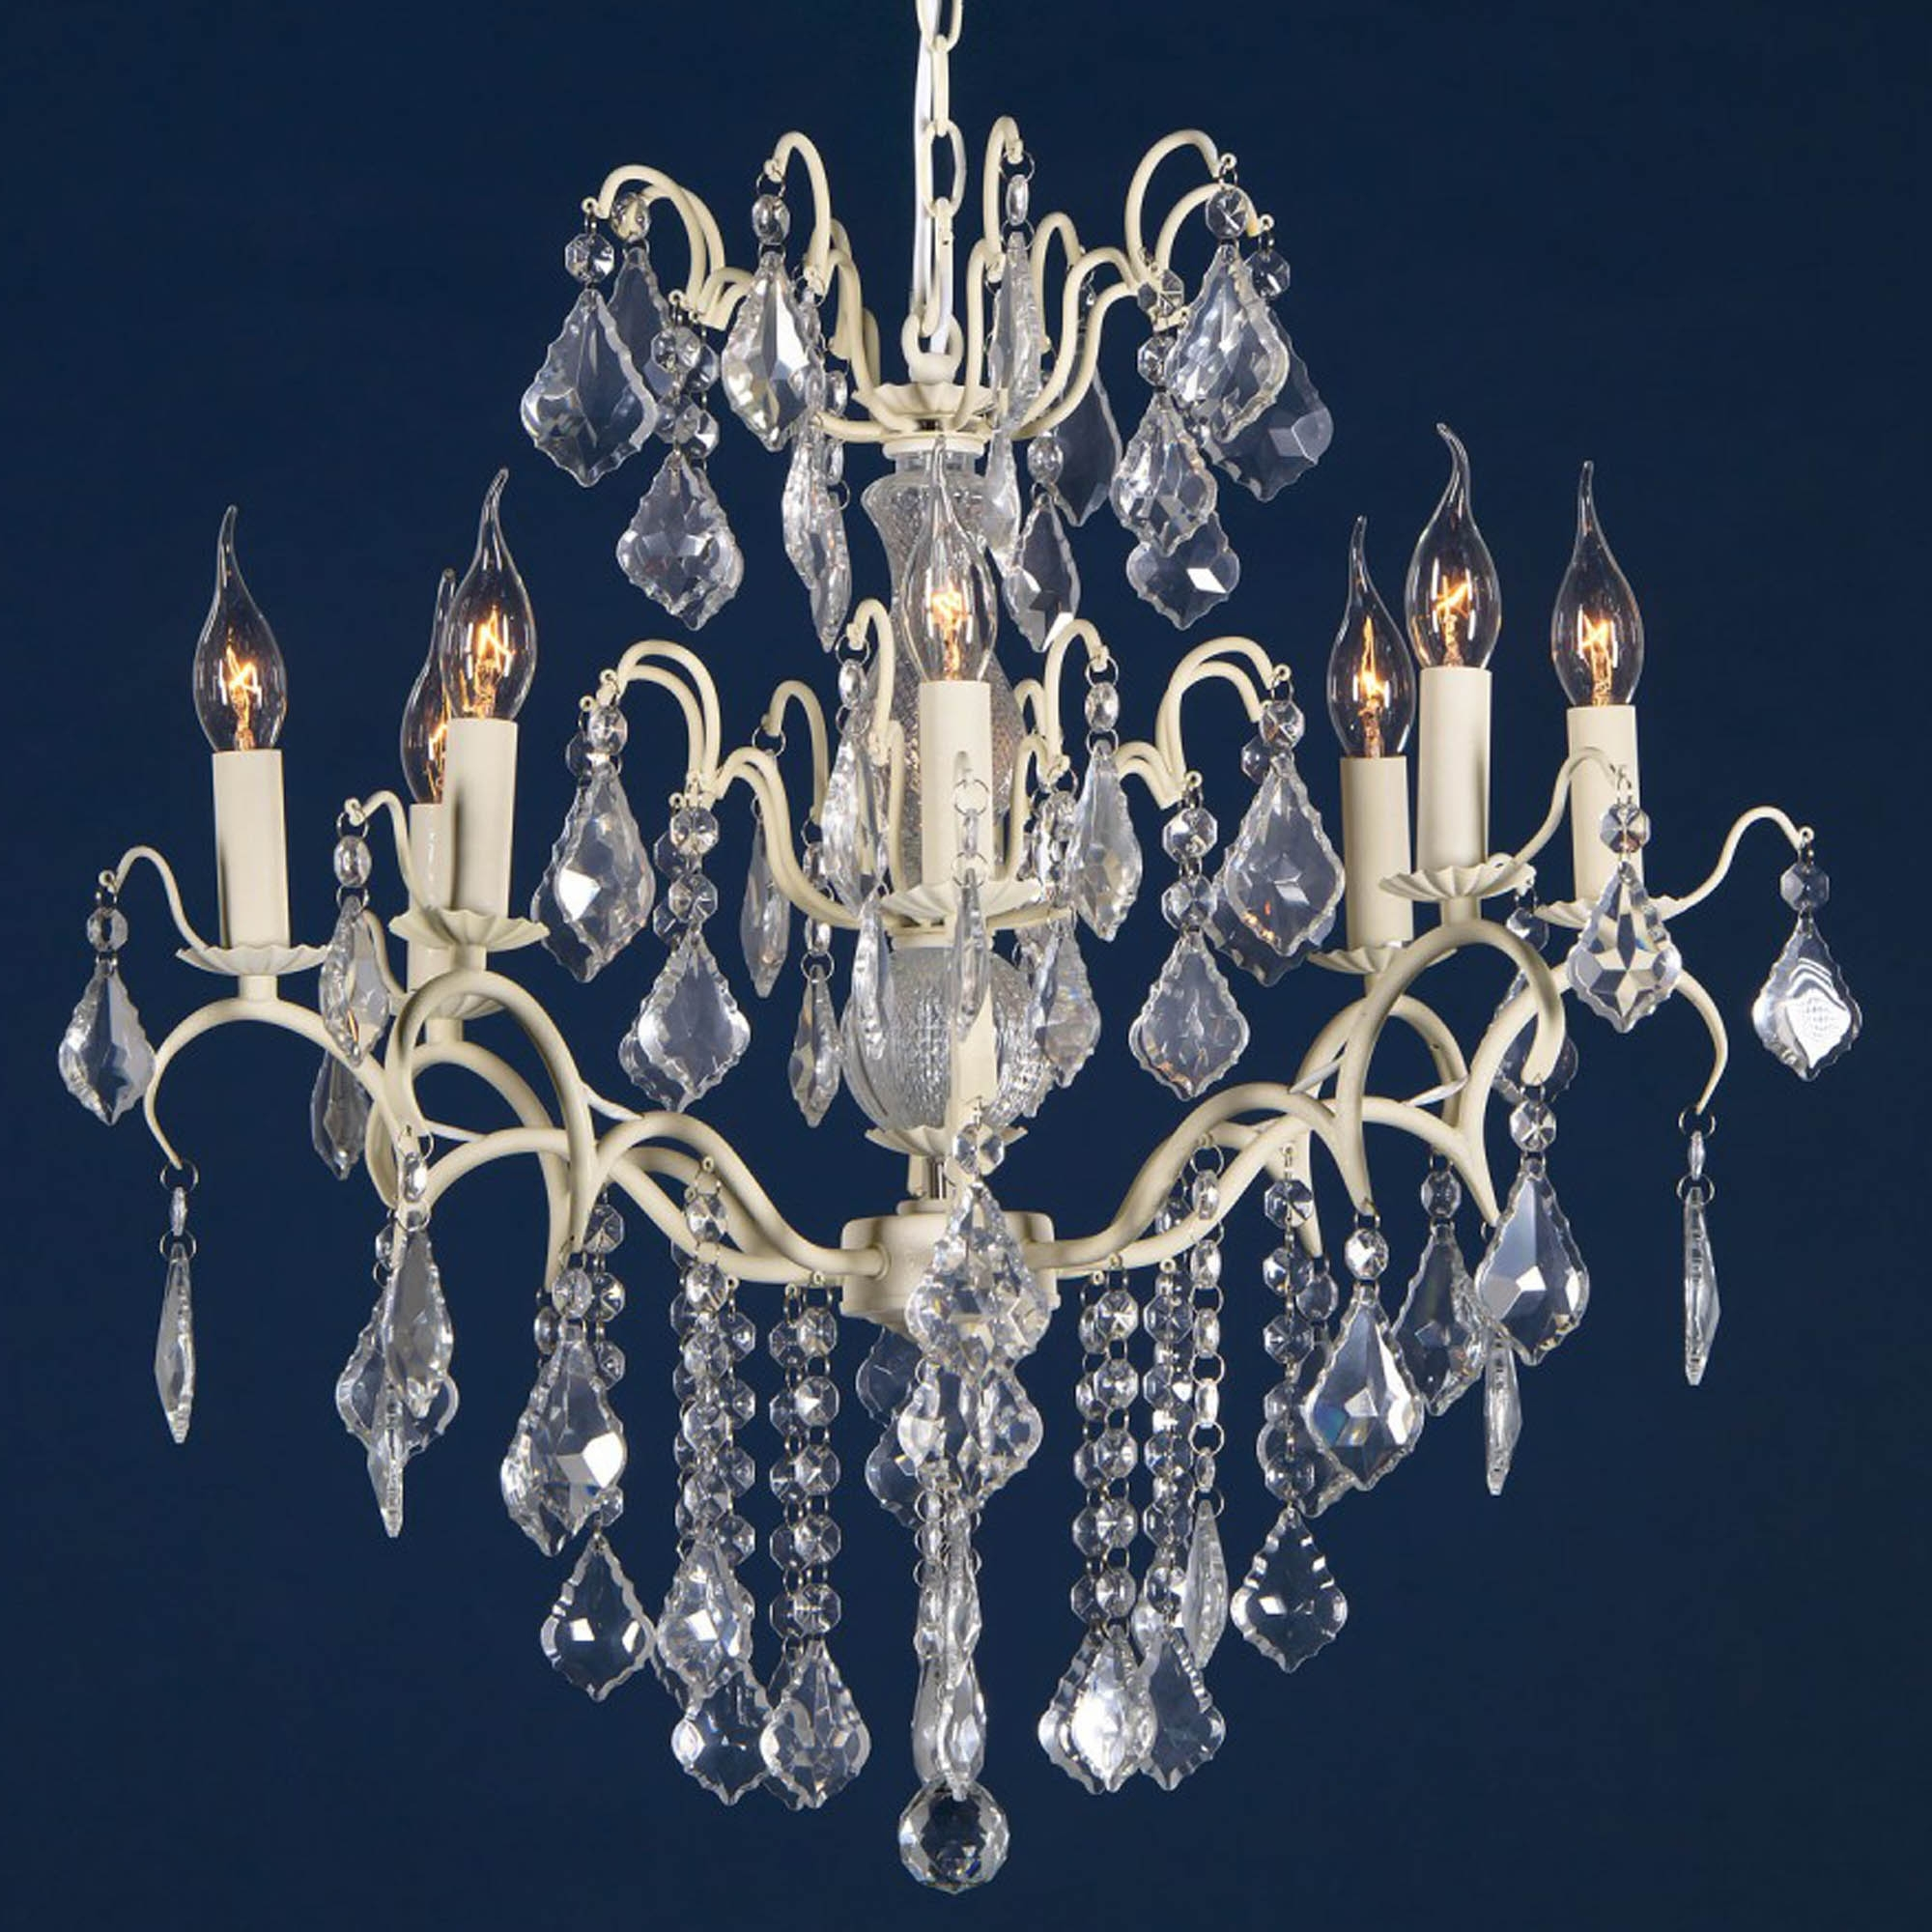 Charlotte cream crack antique french style chandelier chandeliers charlotte cream crack antique french style chandelier aloadofball Image collections